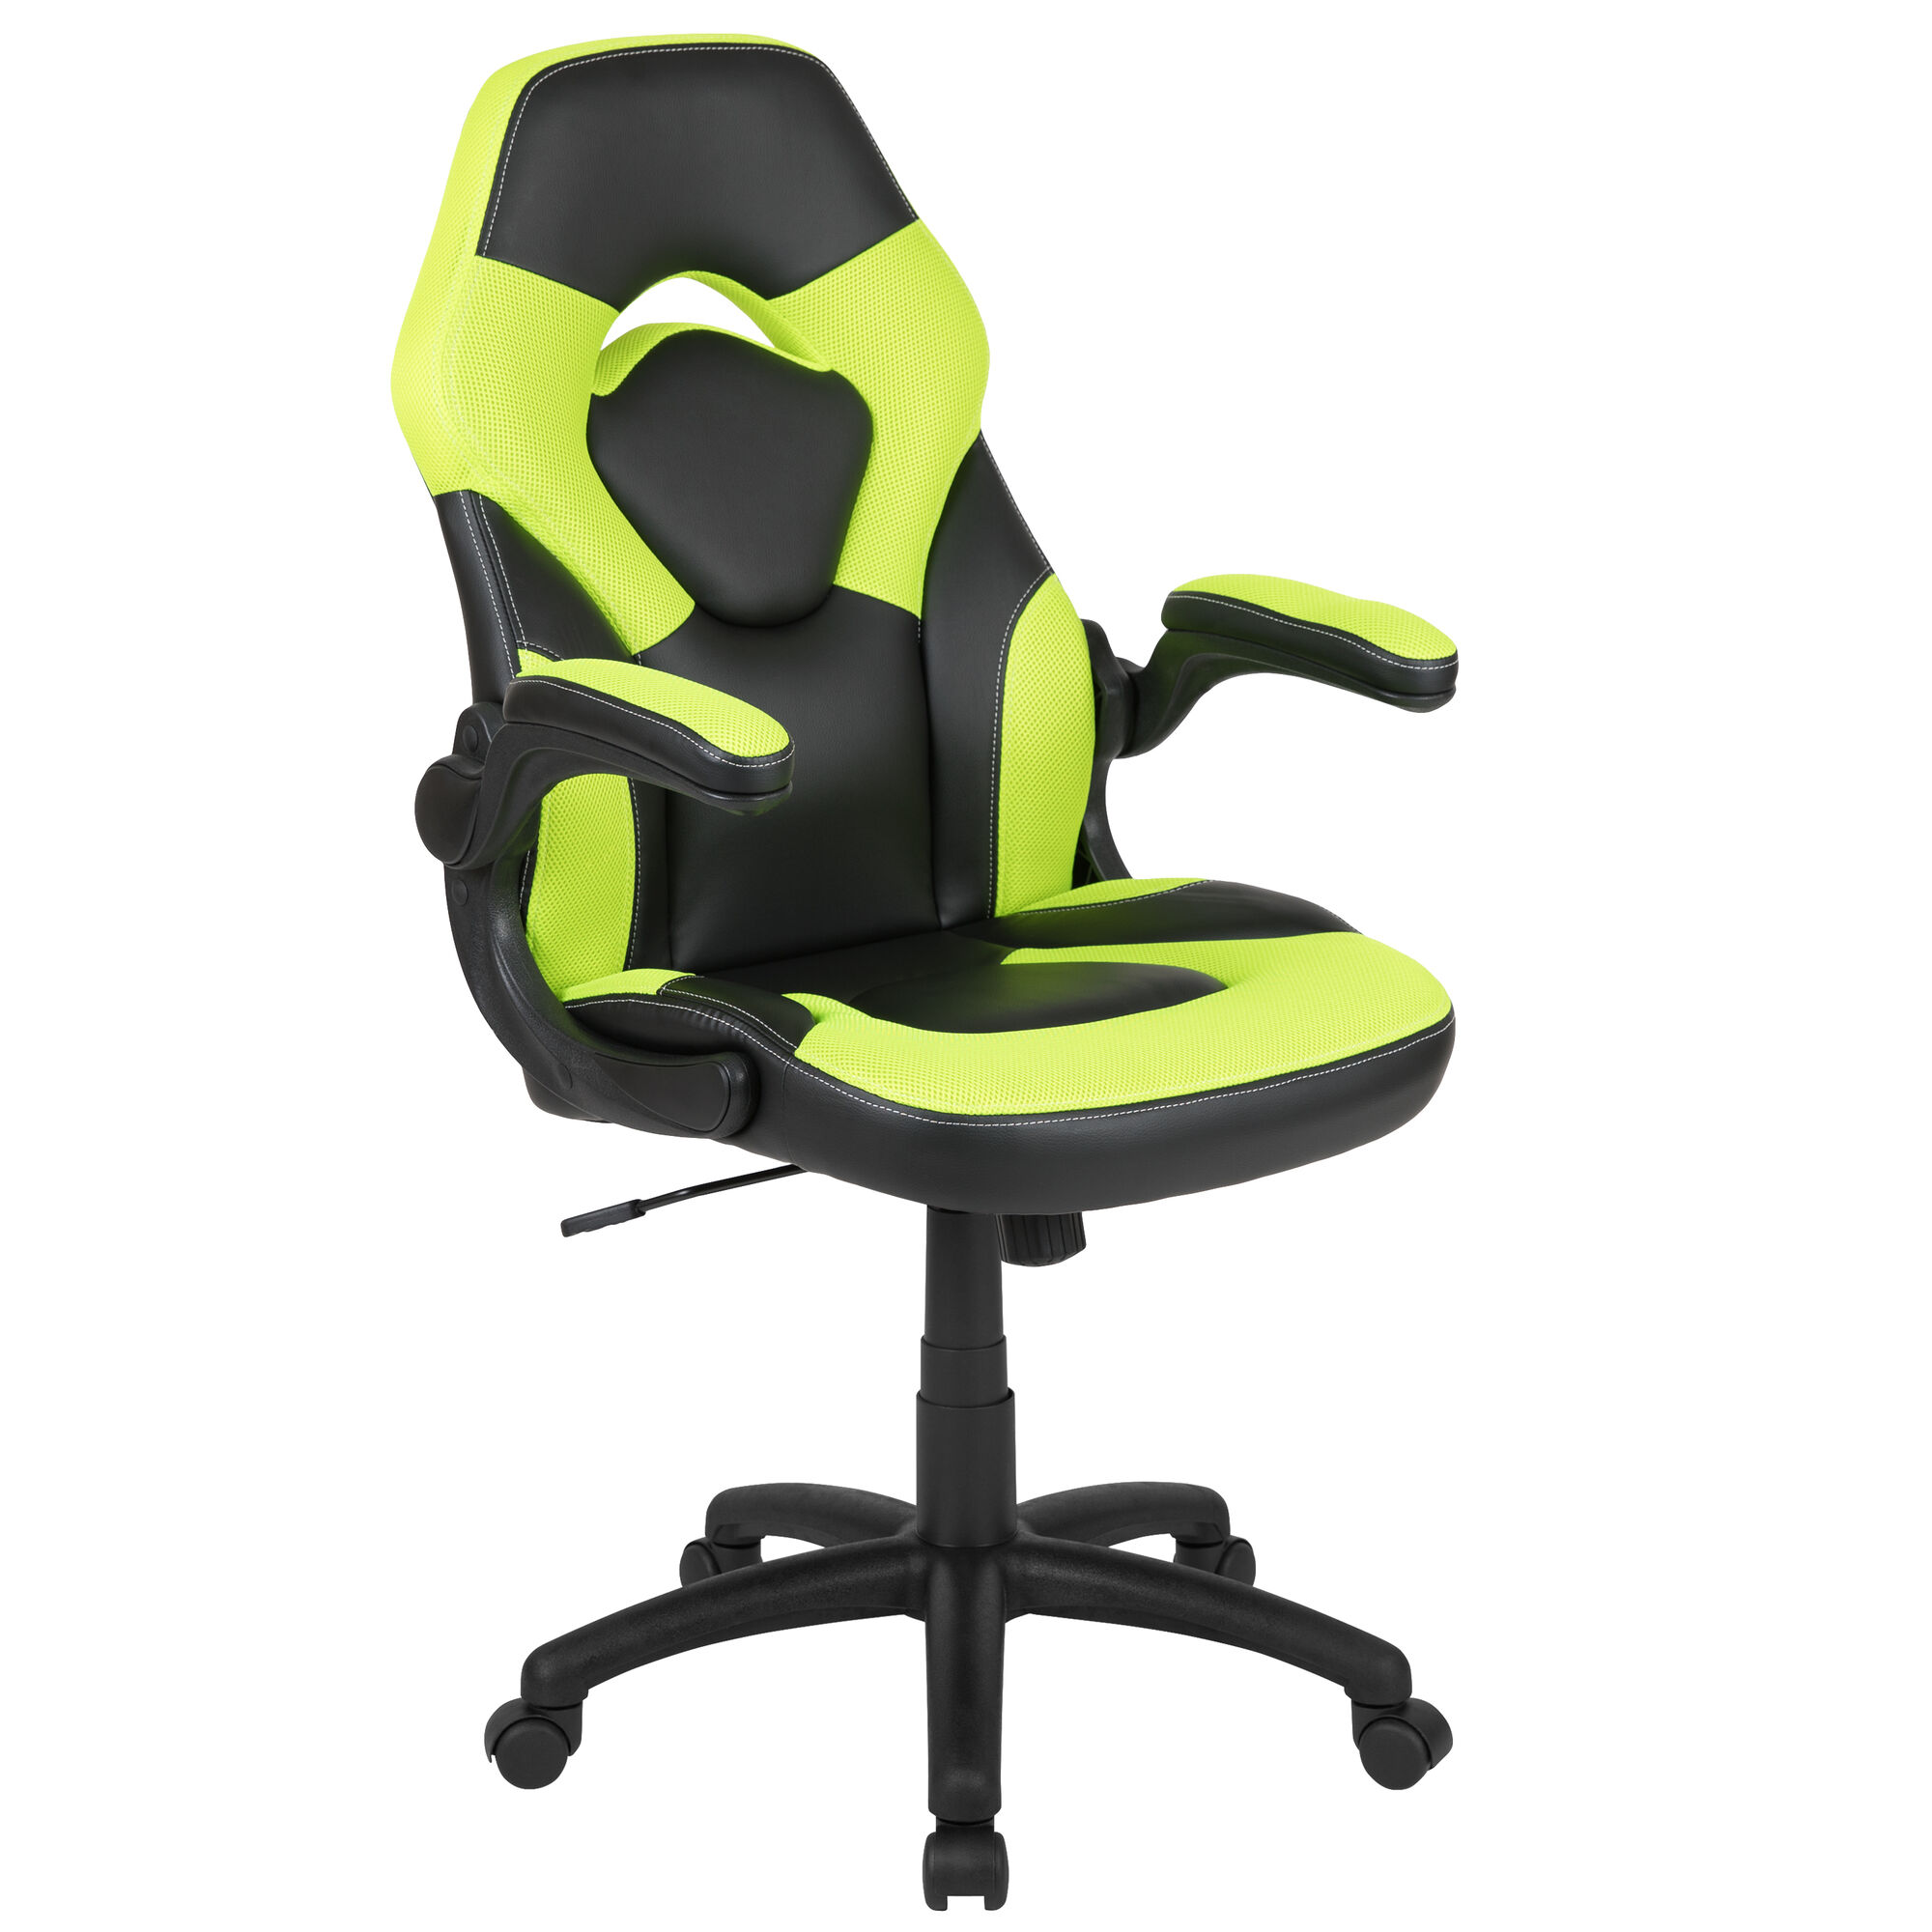 Peachy X10 Gaming Chair Racing Office Ergonomic Computer Pc Adjustable Swivel Chair With Flip Up Arms Neon Green Black Leathersoft Ocoug Best Dining Table And Chair Ideas Images Ocougorg